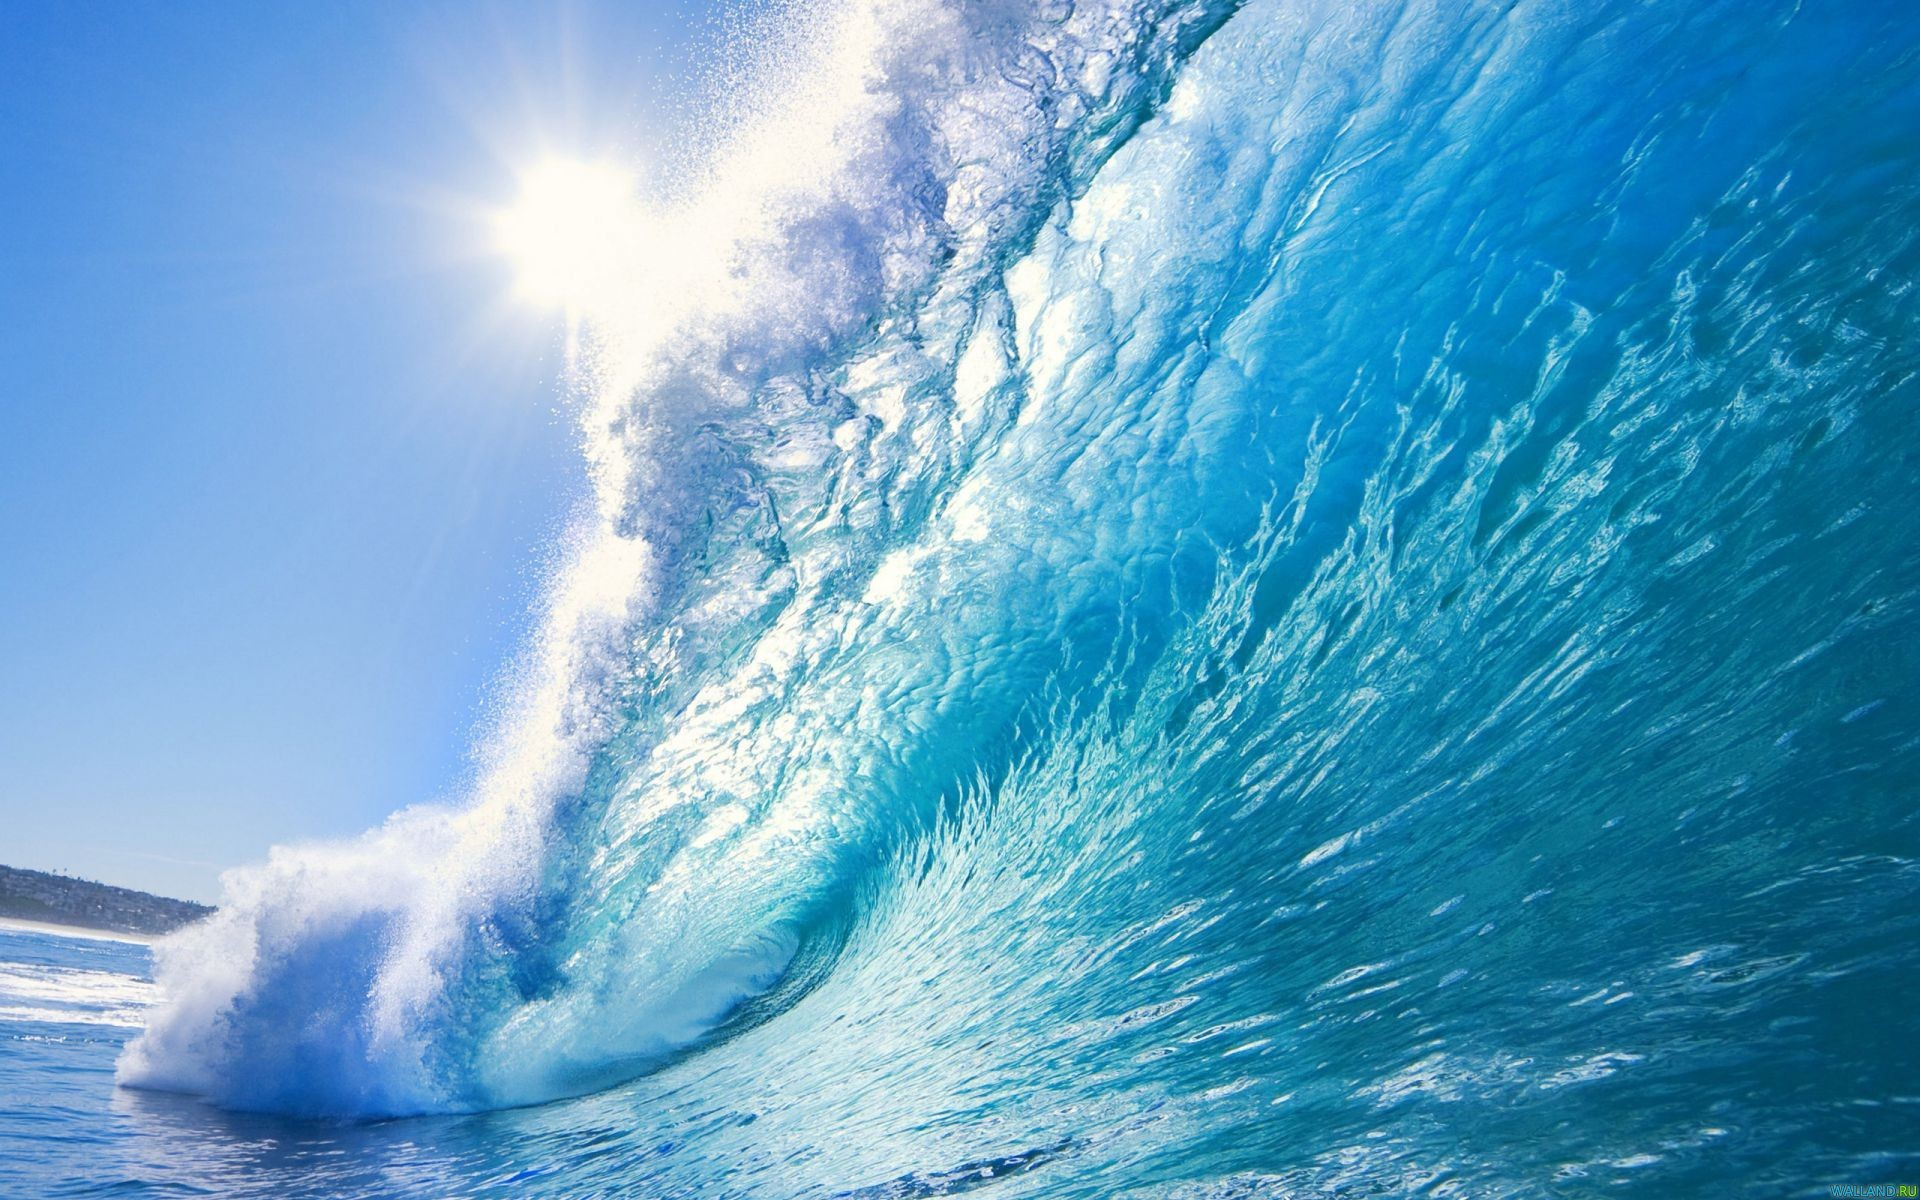 Gorgeous Ocean Waves Wallpaper